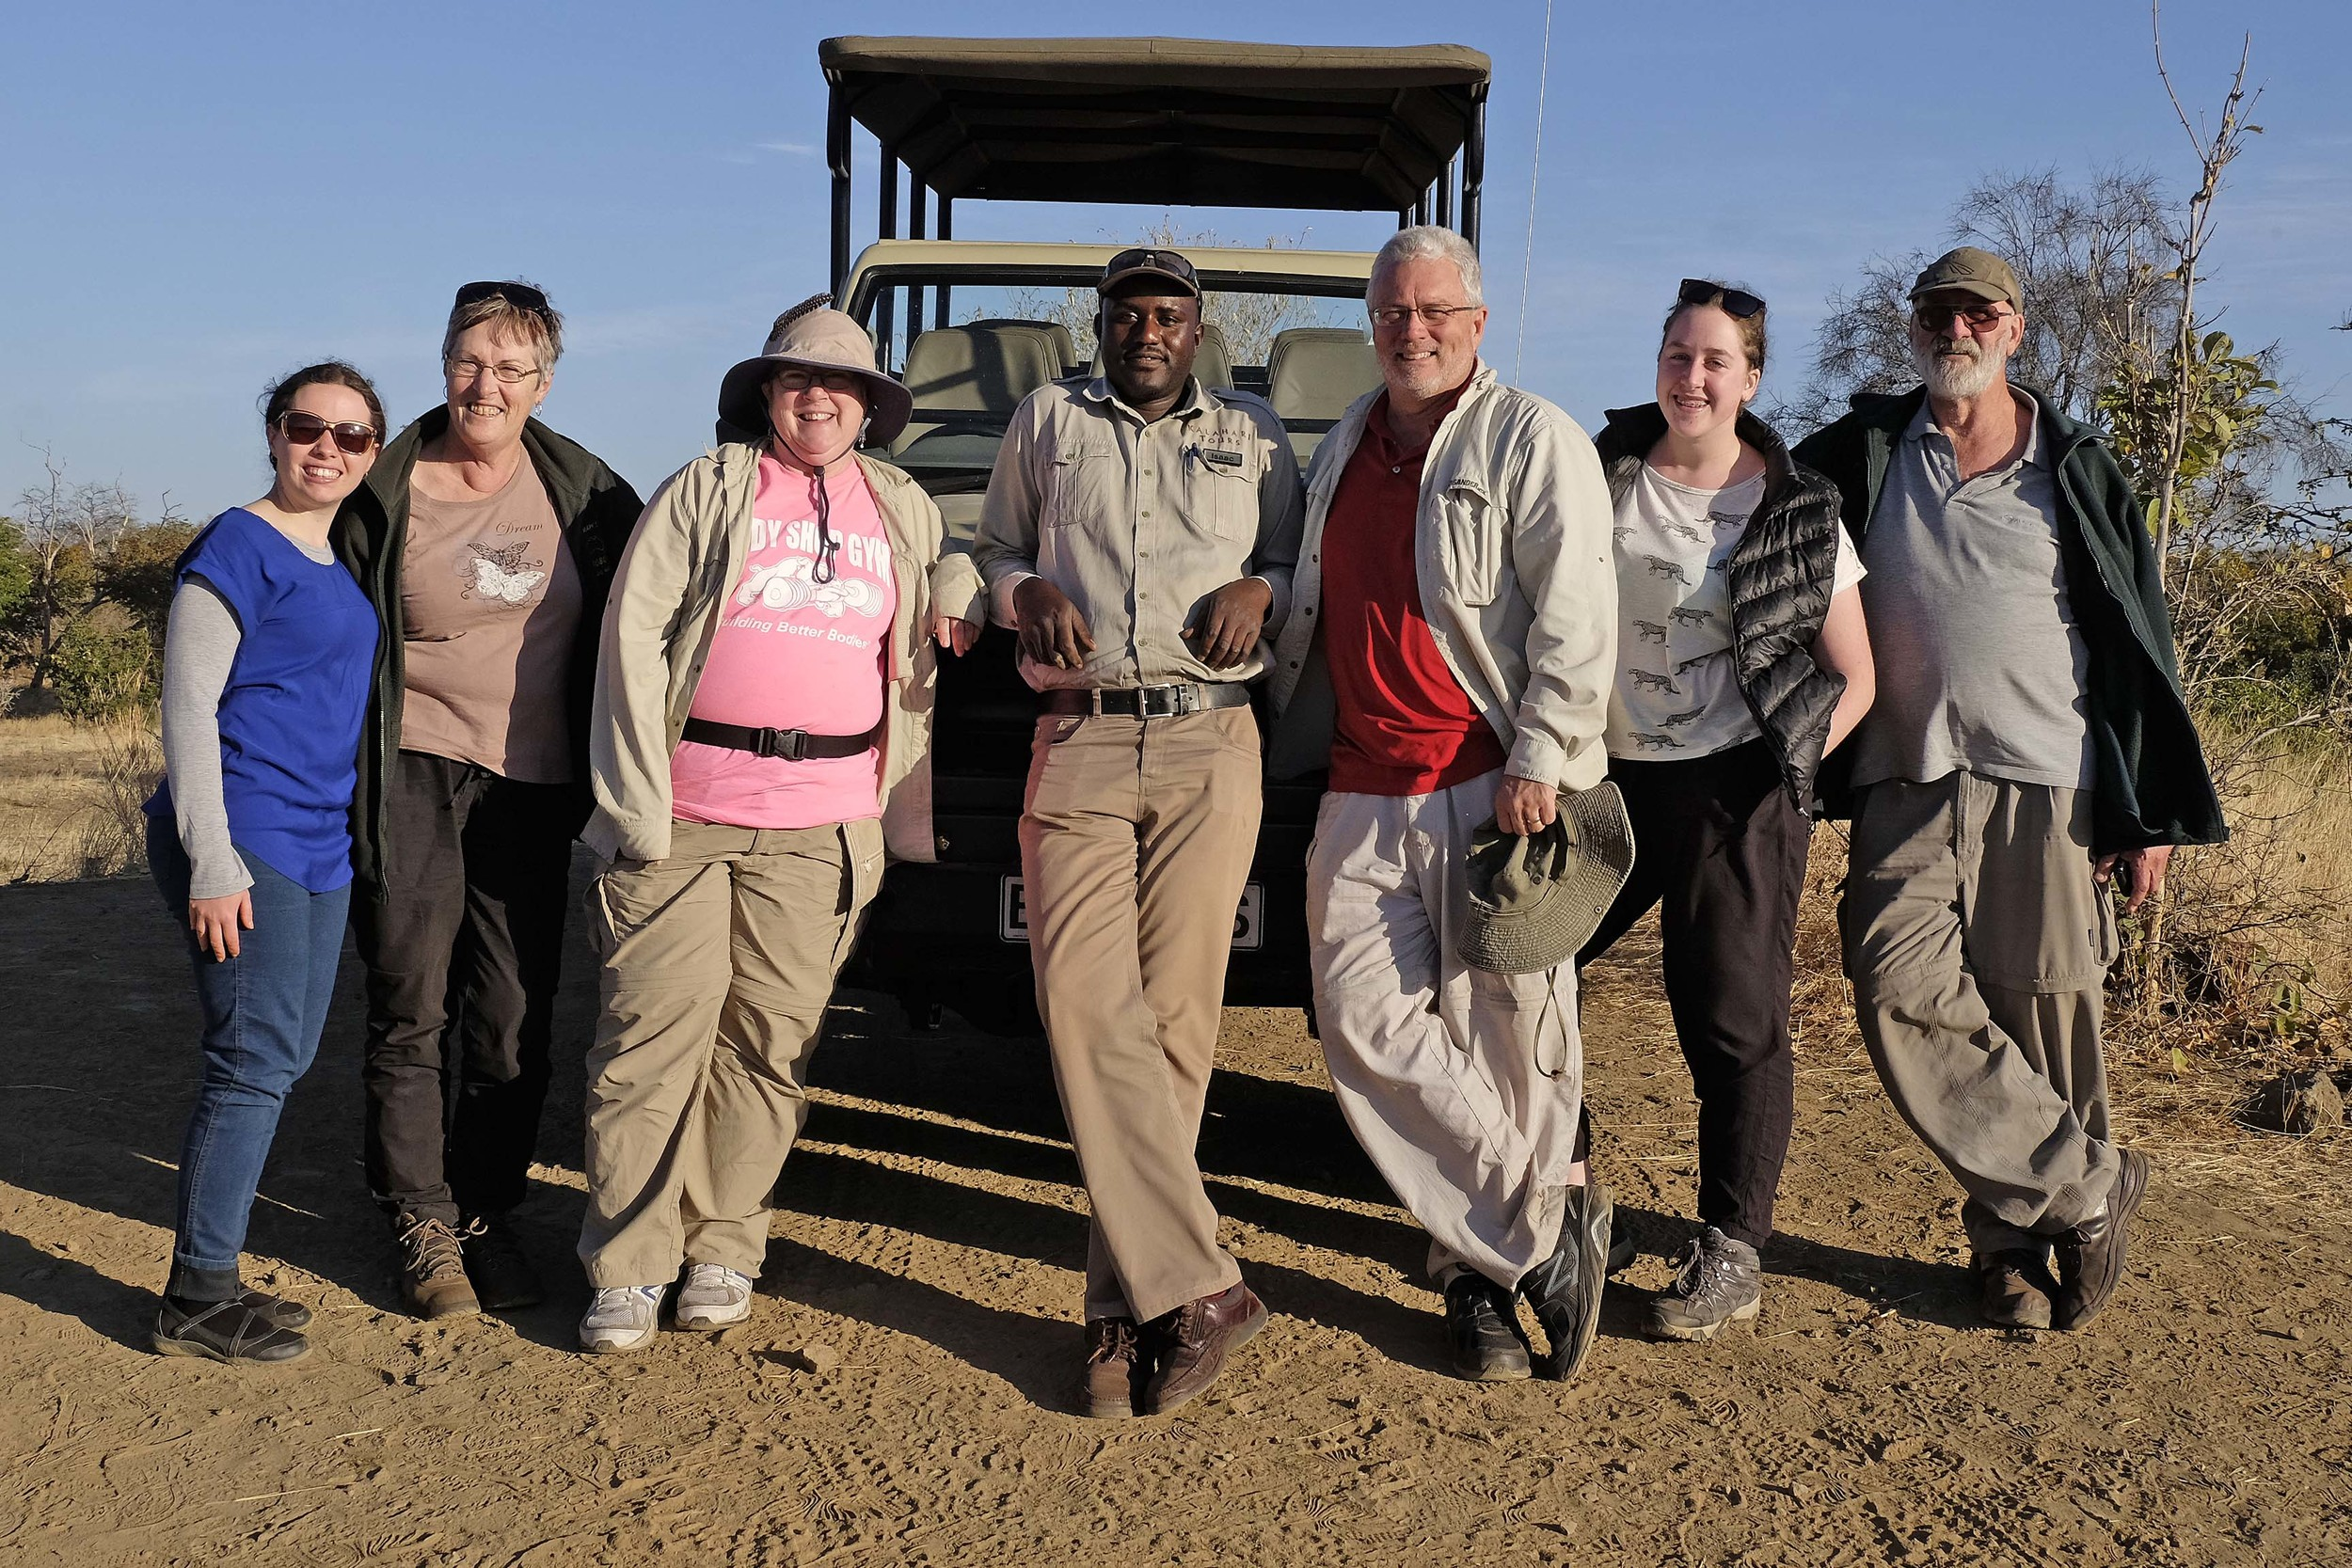 Our Australian friends and guide (L to R): Emily, Annette, Abby, Isaac, Doug, Megan & Kevin